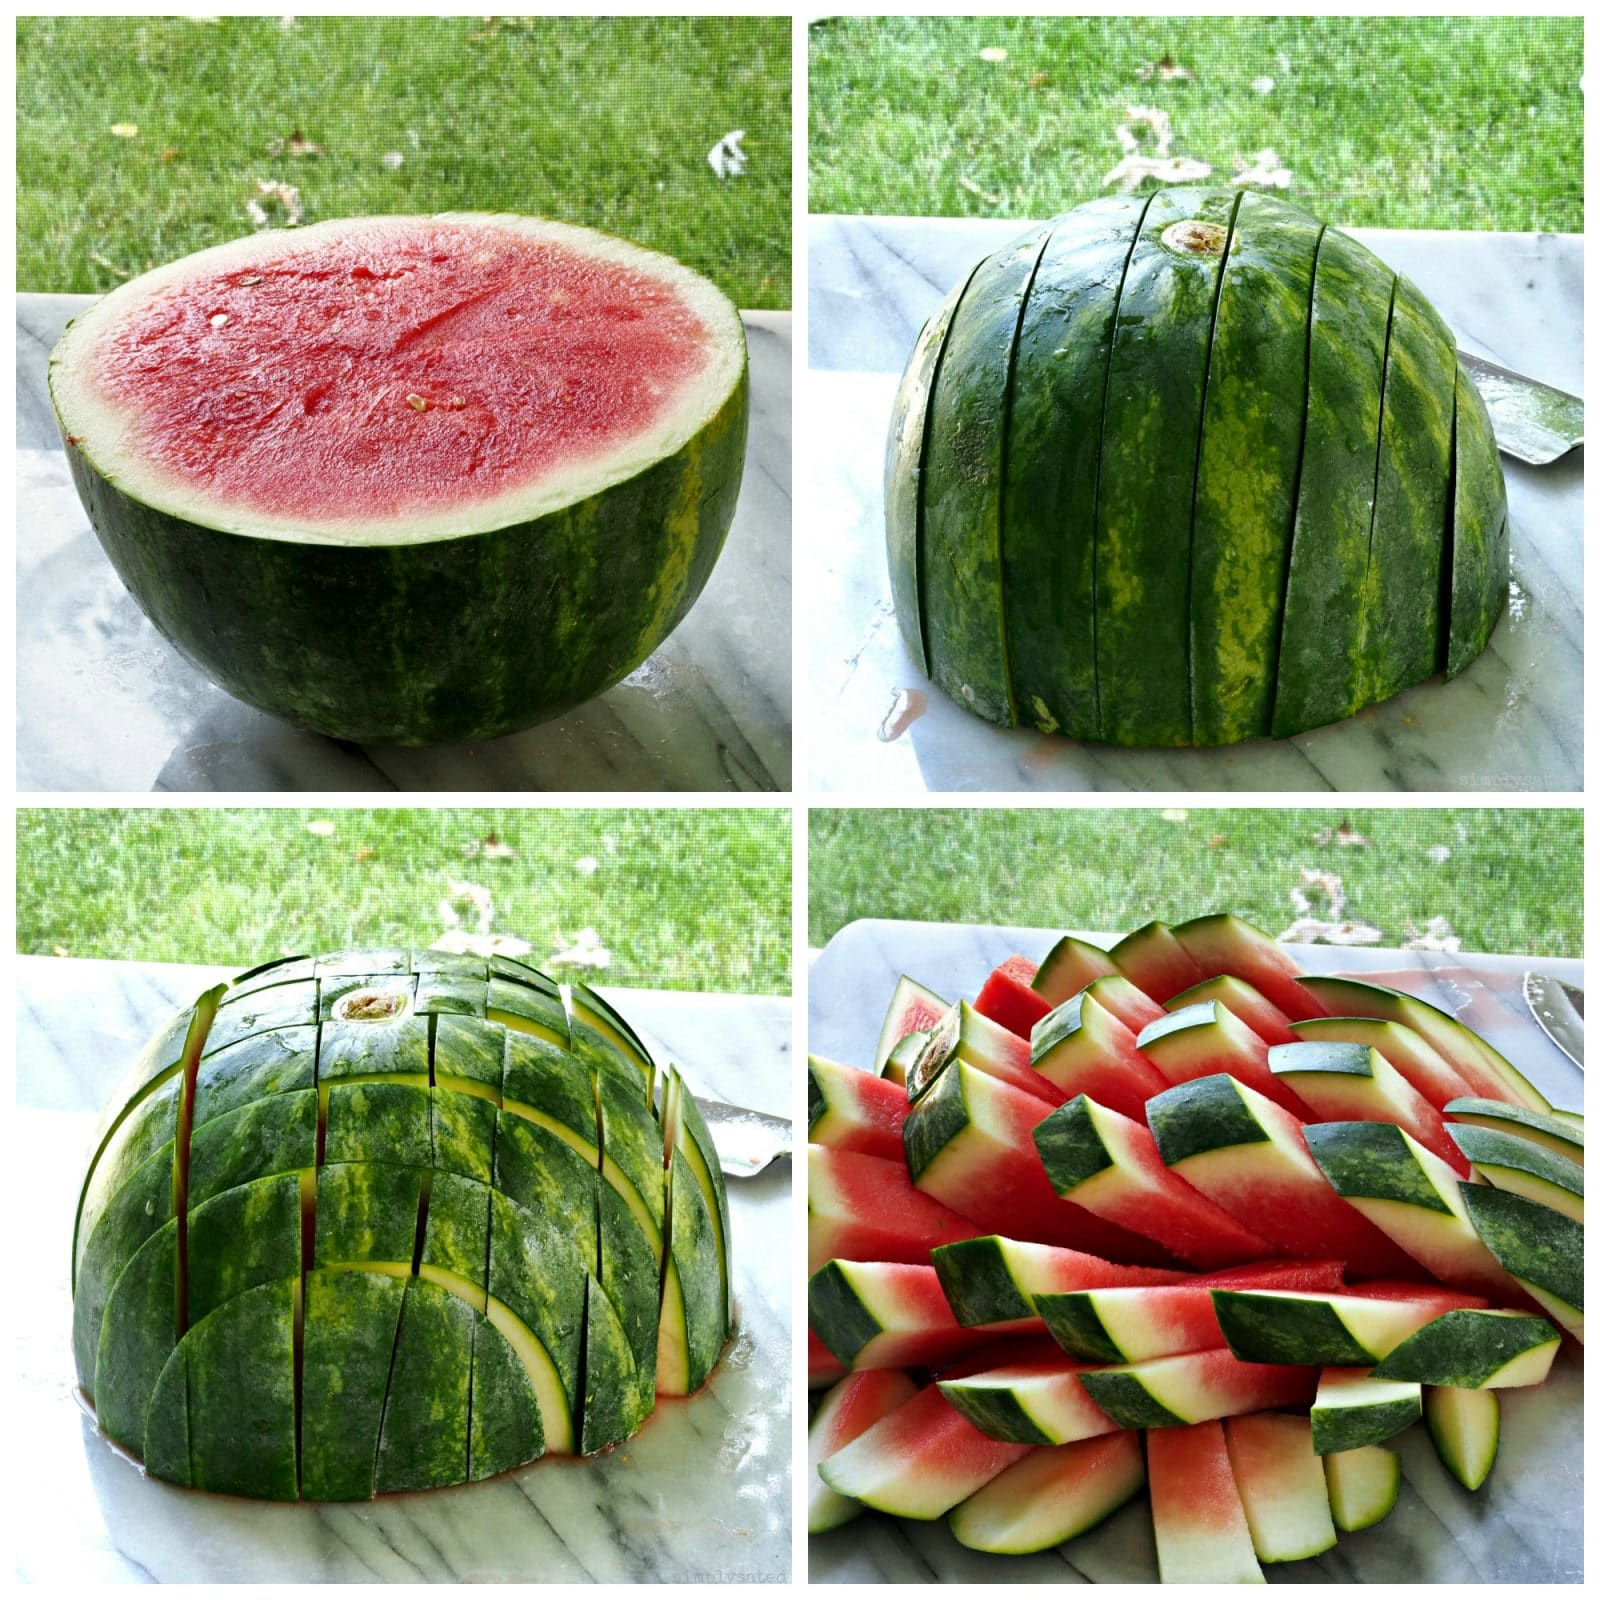 How to cut perfect watermelon wedges